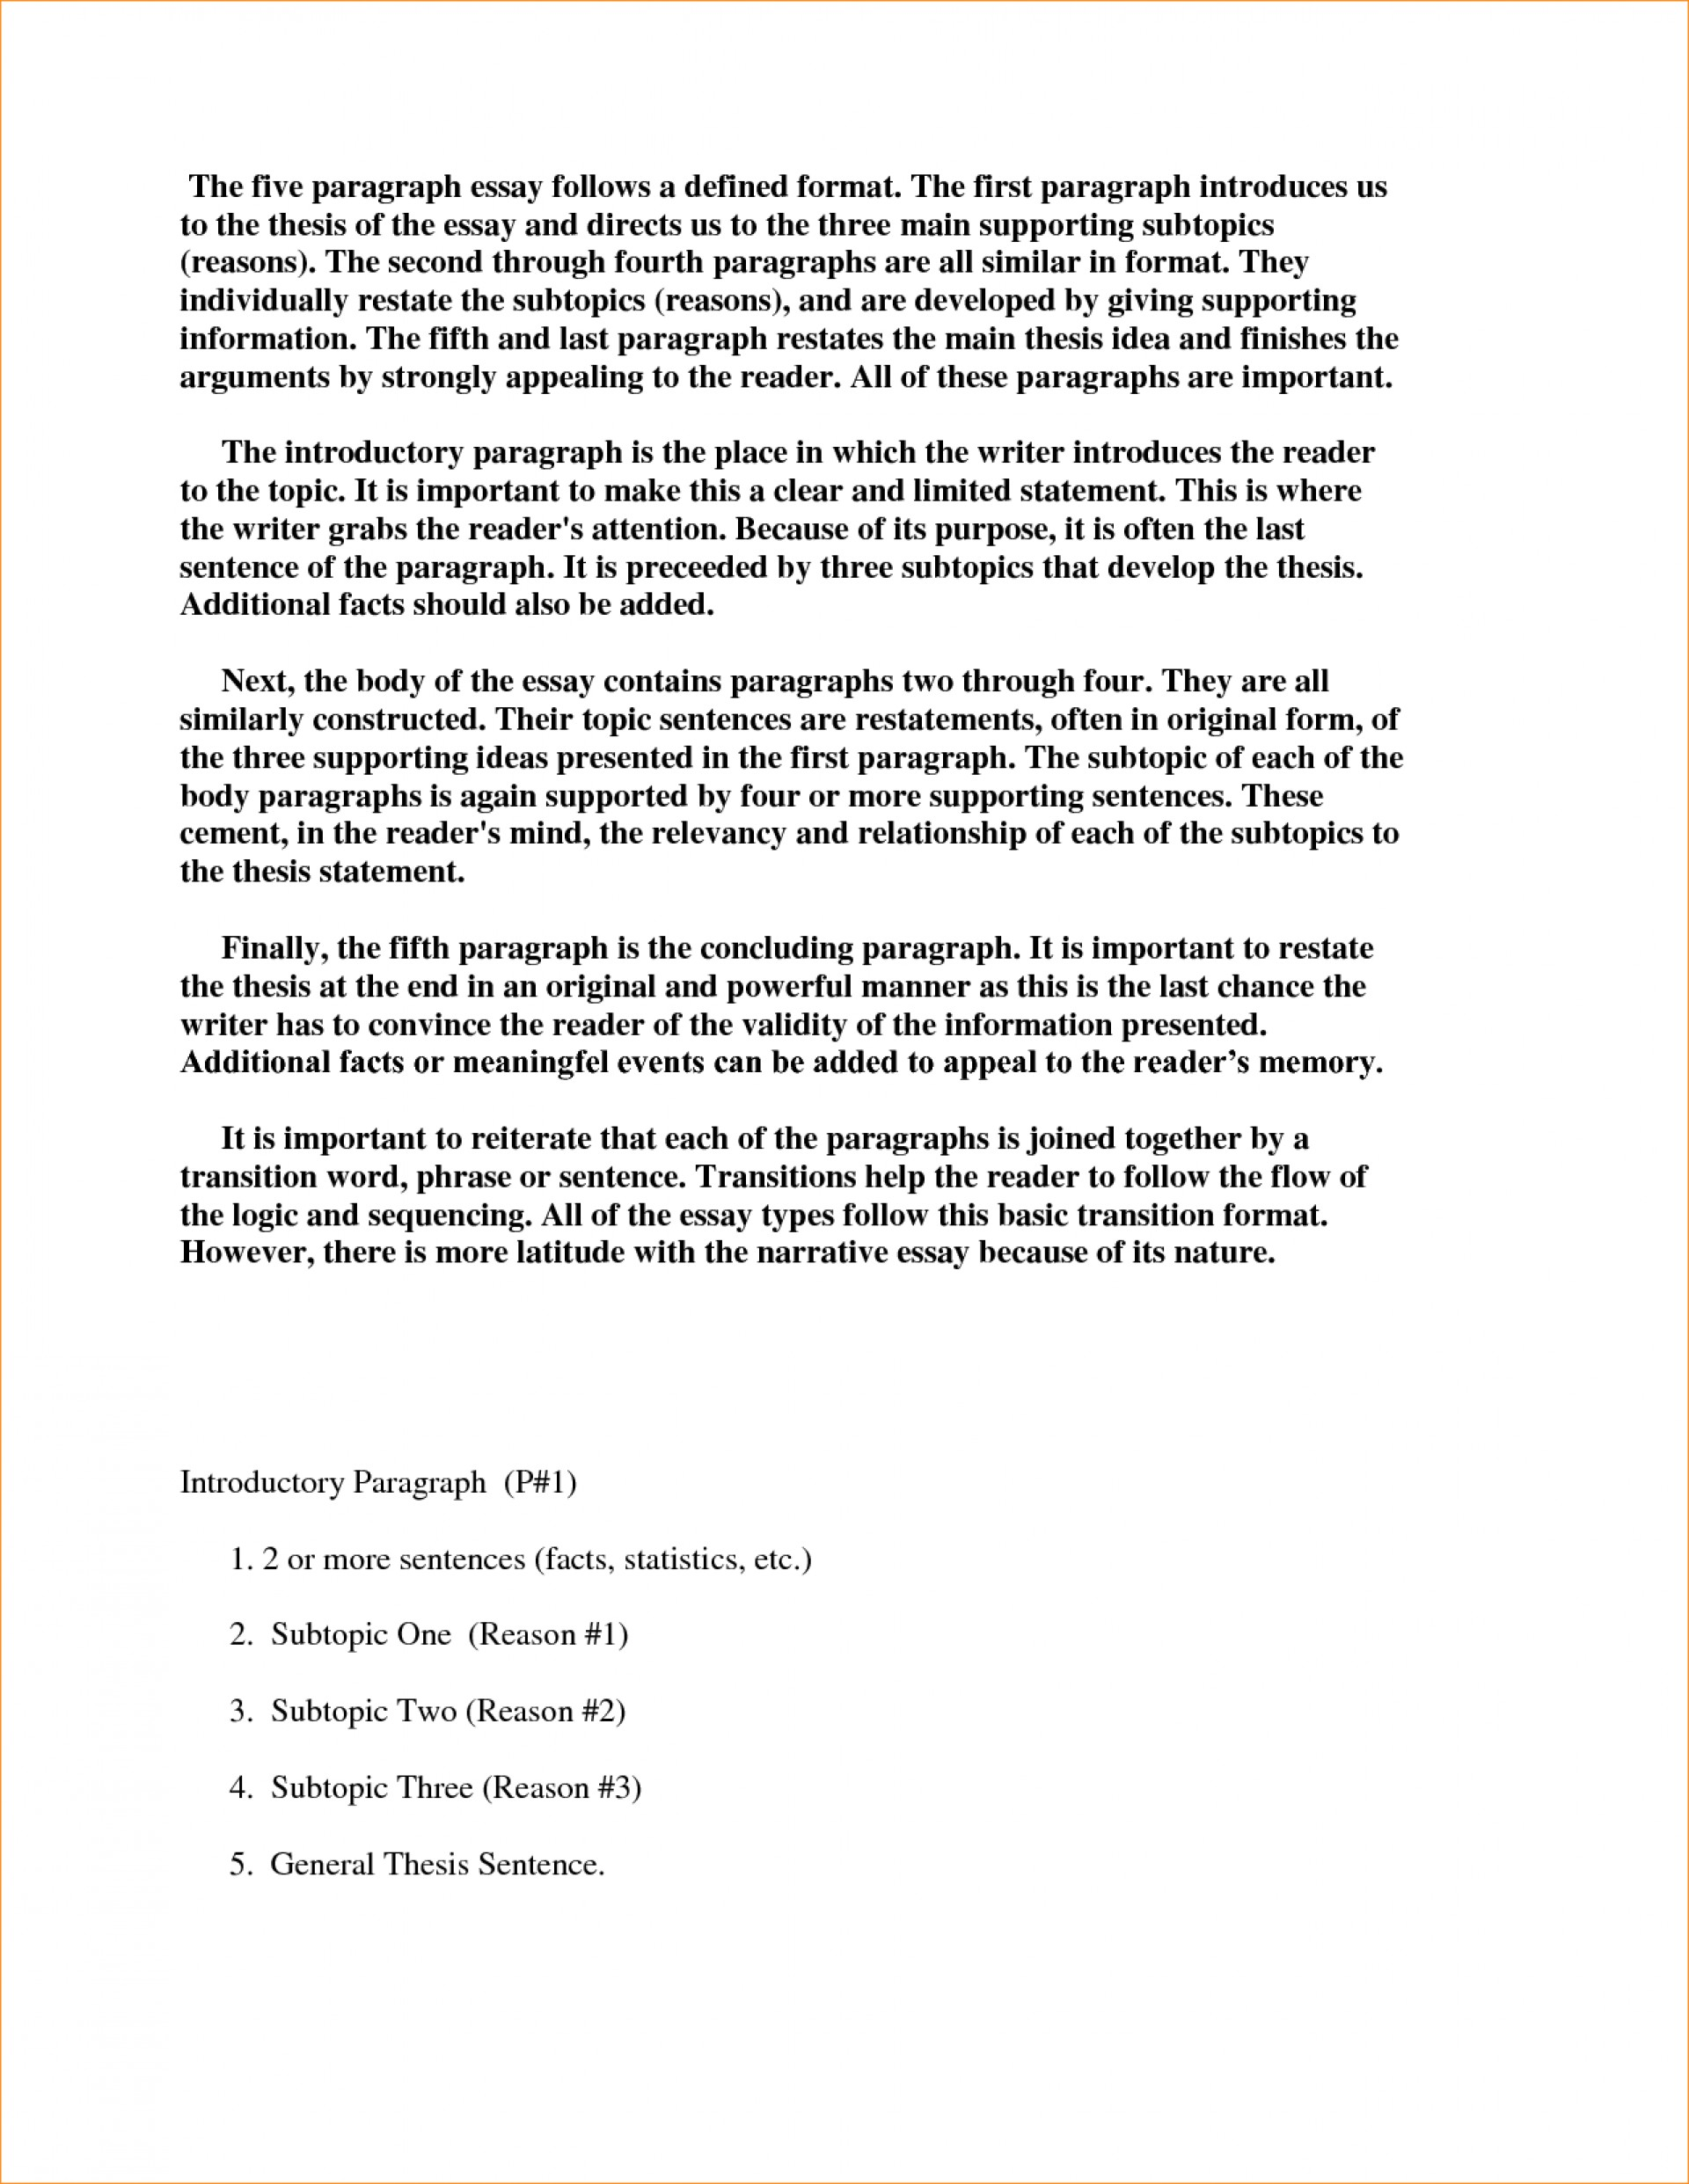 005 Essay Example Body Paragraphs Of An Concluding Paragraph Ap How To Start Off In Examples Format Expository Synthesis Informative Third Persuasive Argumentative Narrative Impressive A The First Words 1920